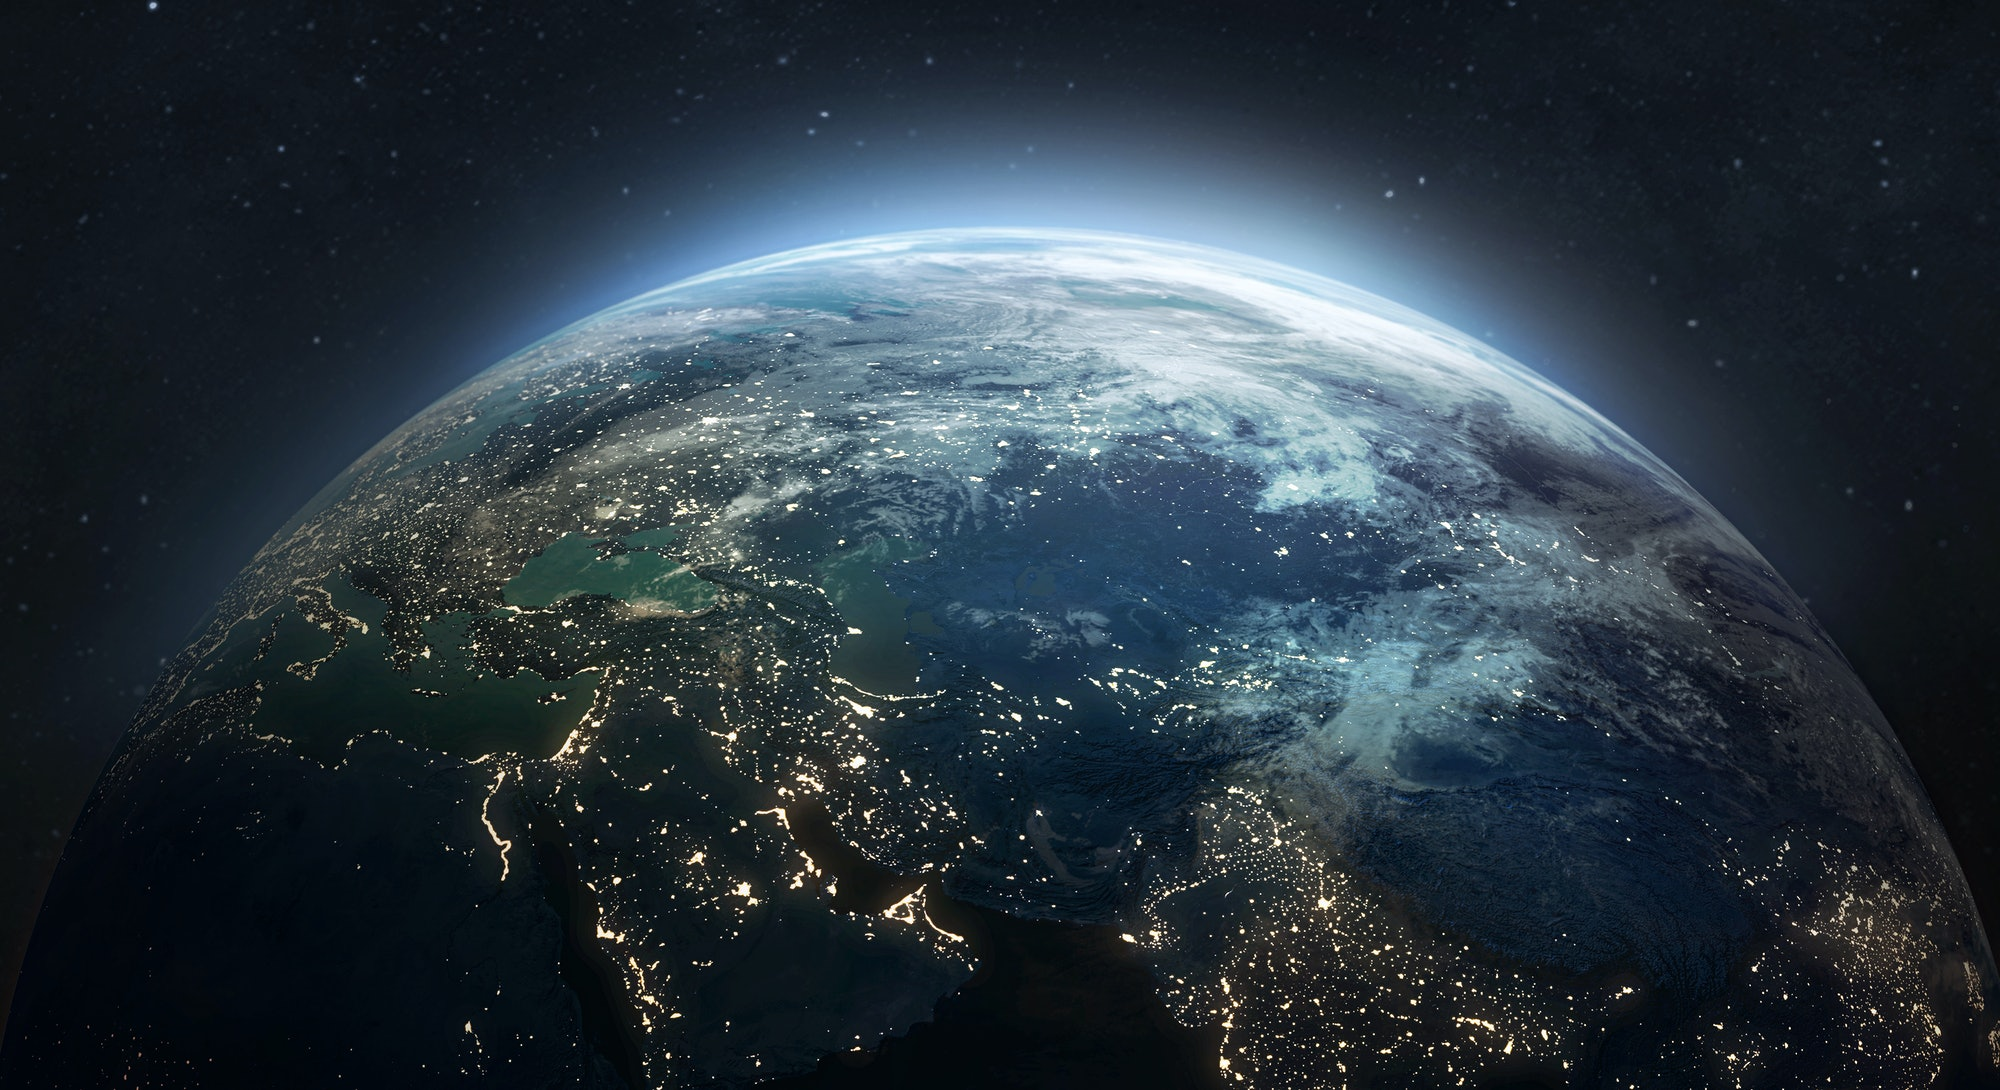 Earth at he night. Abstract wallpaper. City lights on planet. Civilization. Elements of this image f...